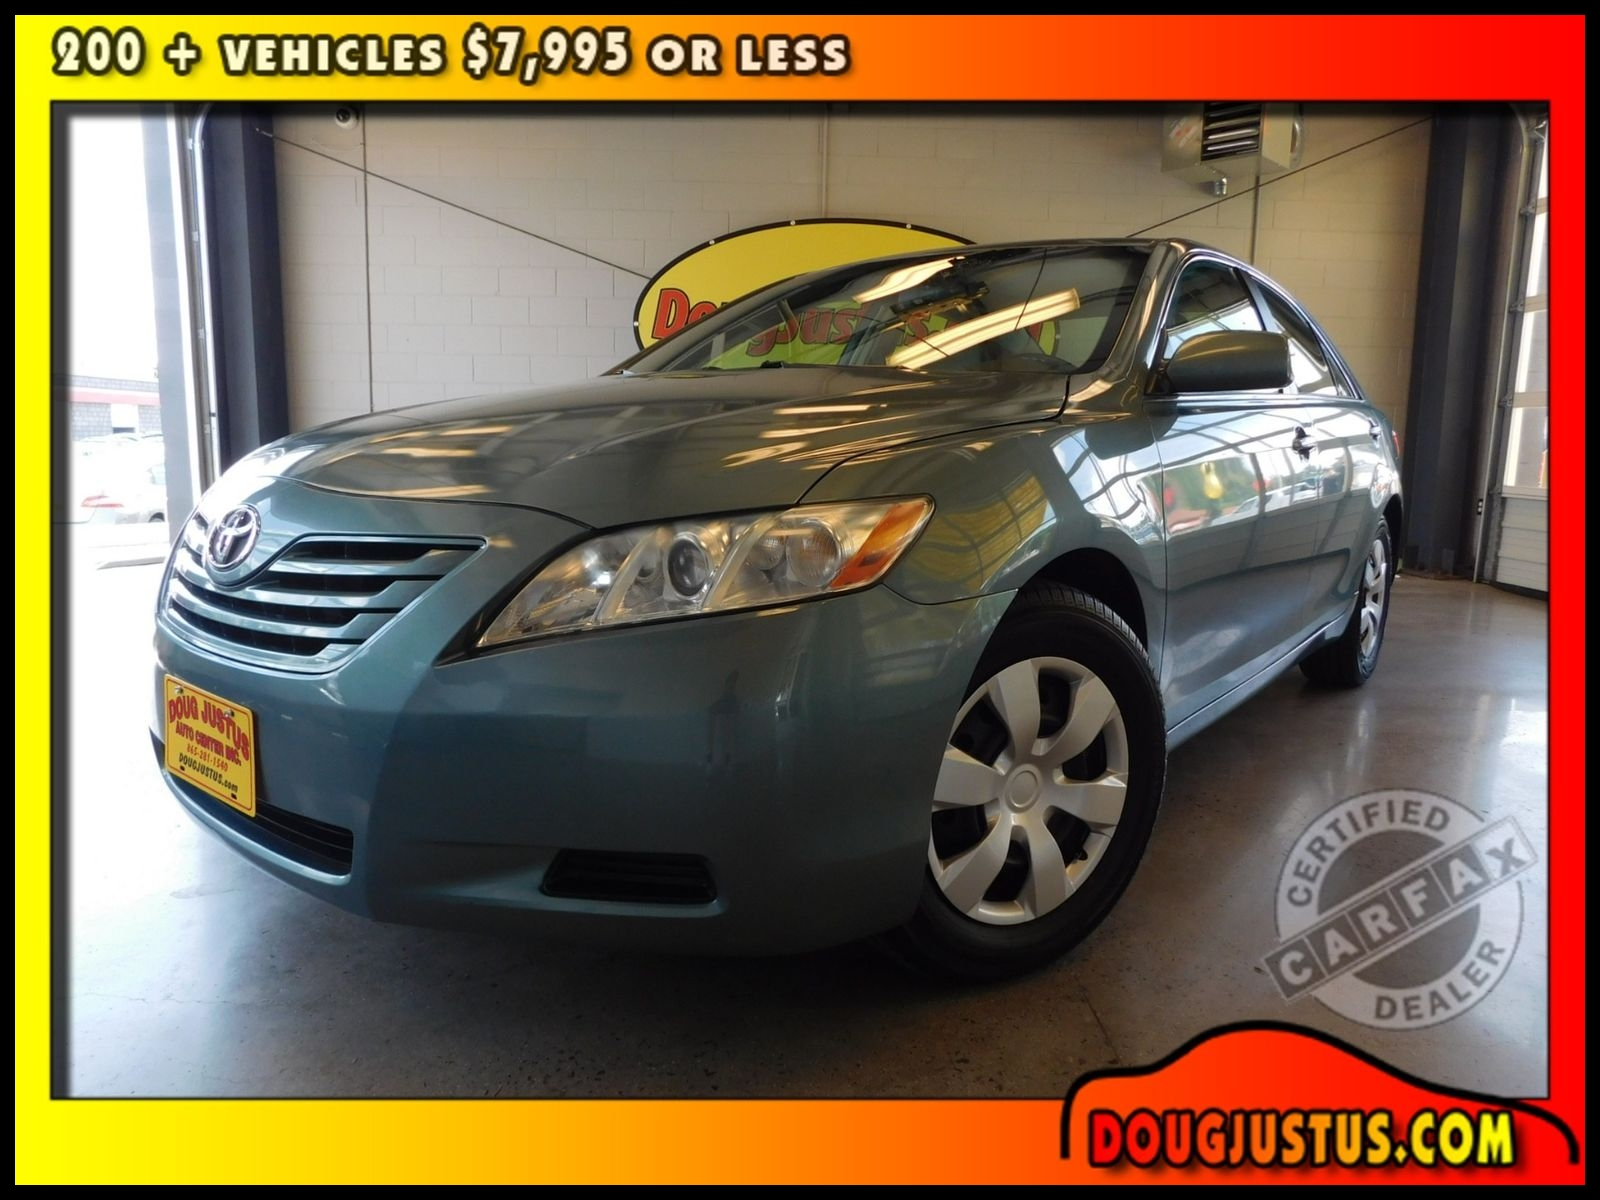 2007 Toyota Camry CE city TN Doug Justus Auto Center Inc in Airport Motor Mile